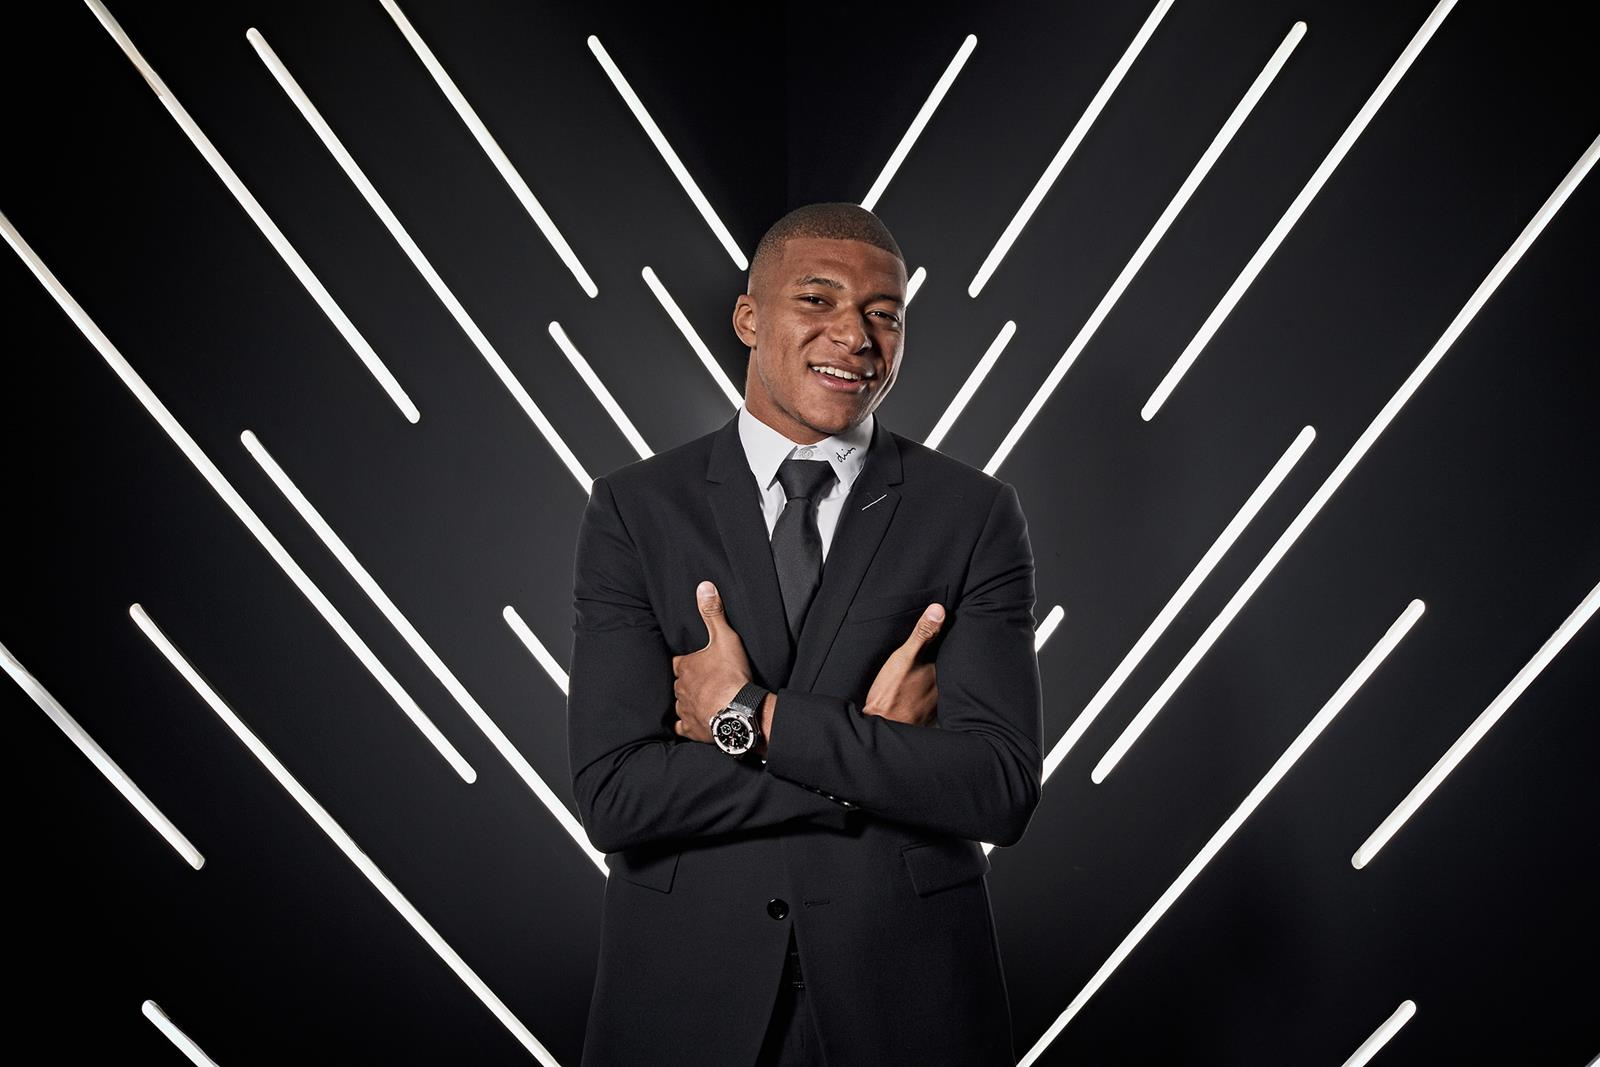 LONDON, ENGLAND - SEPTEMBER 24: Kylian Mbappe of France and Paris Saint-Germain is pictured inside the photo booth prior to The Best FIFA Football Awards at Royal Festival Hall on September 24, 2018 in London, England. (Photo by Michael Regan - FIFA/FIFA via Getty Images)